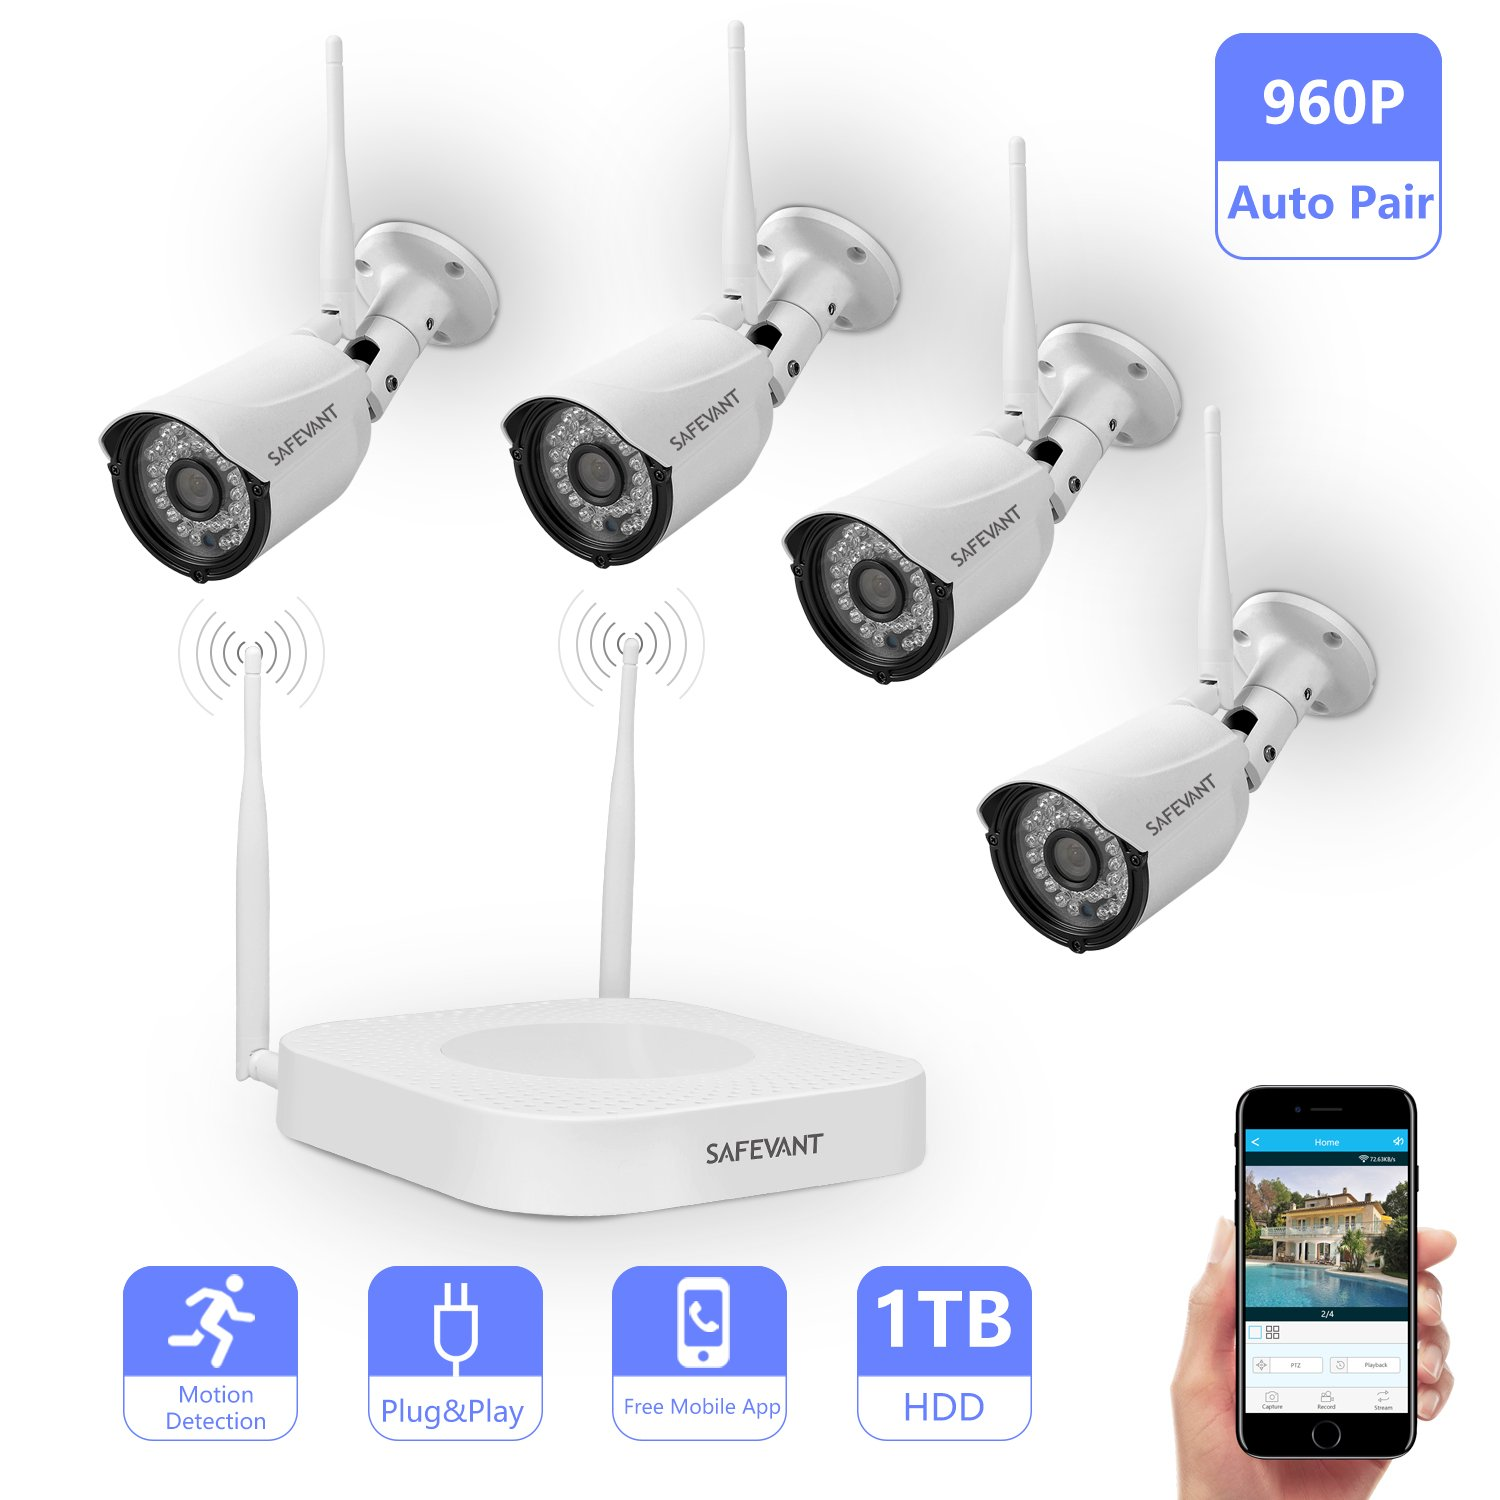 Wireless Security Camera System,Safevant Full-HD 8CH Video Security System with 4pcs 960P Wireless Security Cameras,65ft Night Vision,1TB HDD Pre-installed ,Auto-Pair,Plug&Play